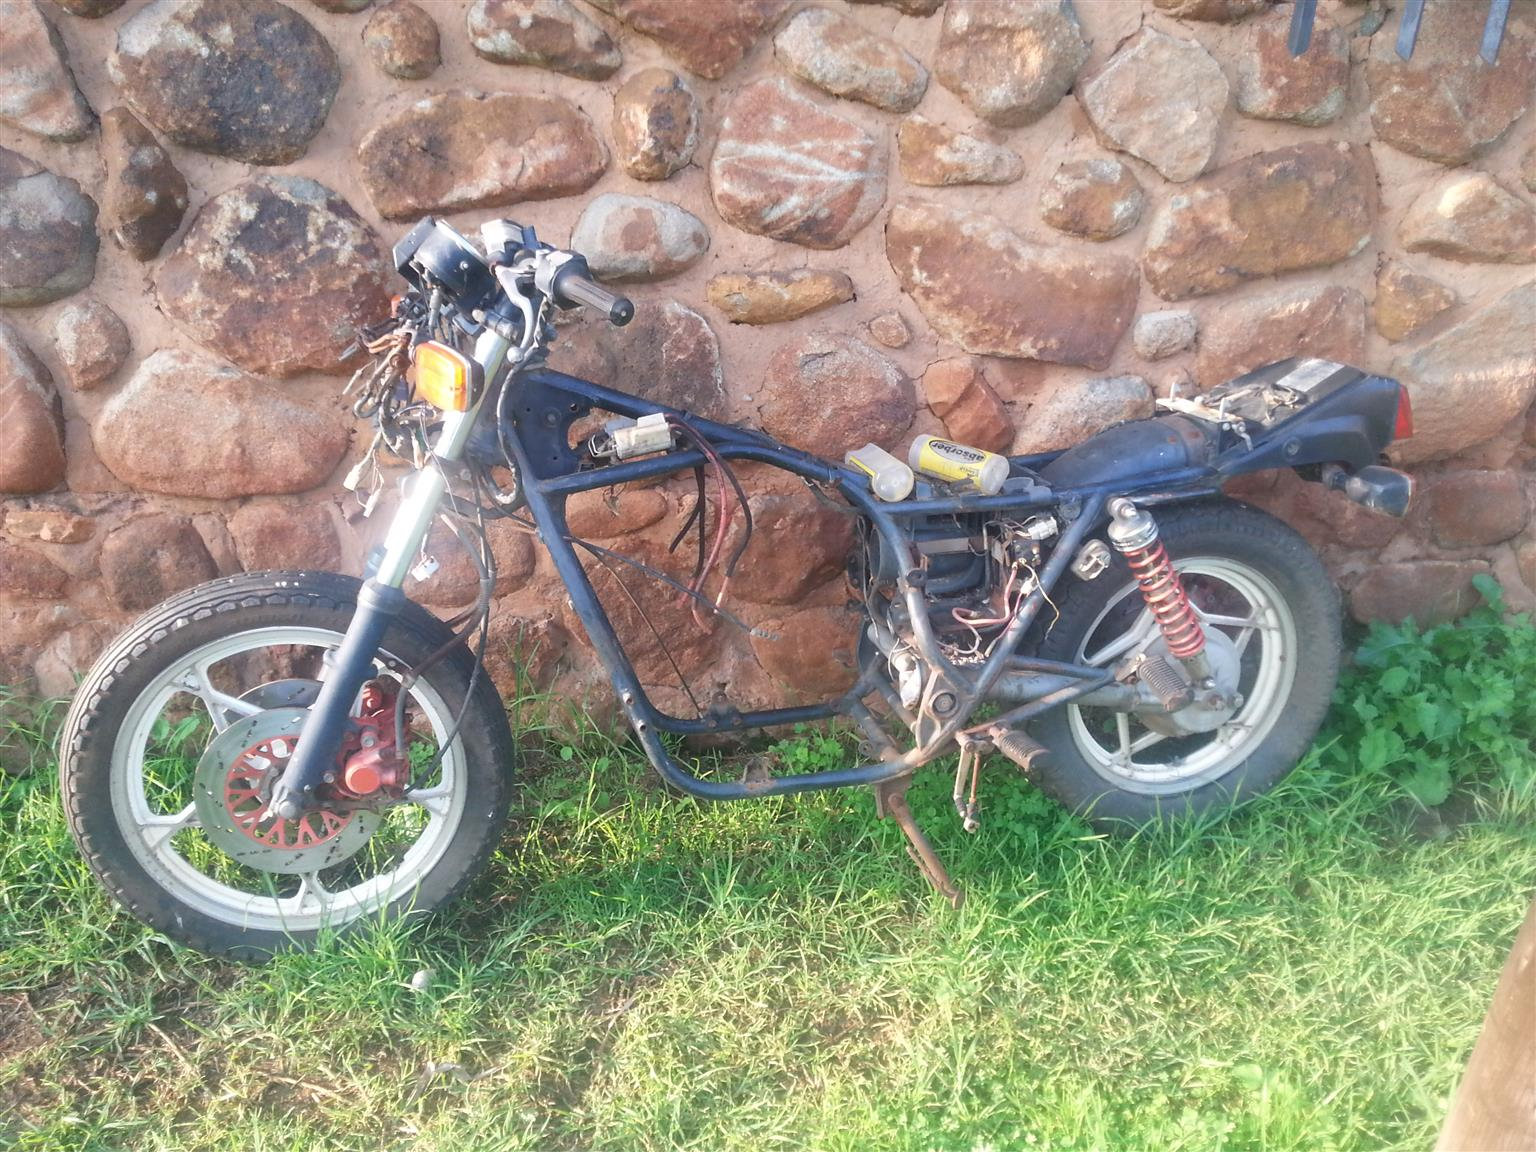 Suzuki gs650 Bike for sale as spares | Junk Mail